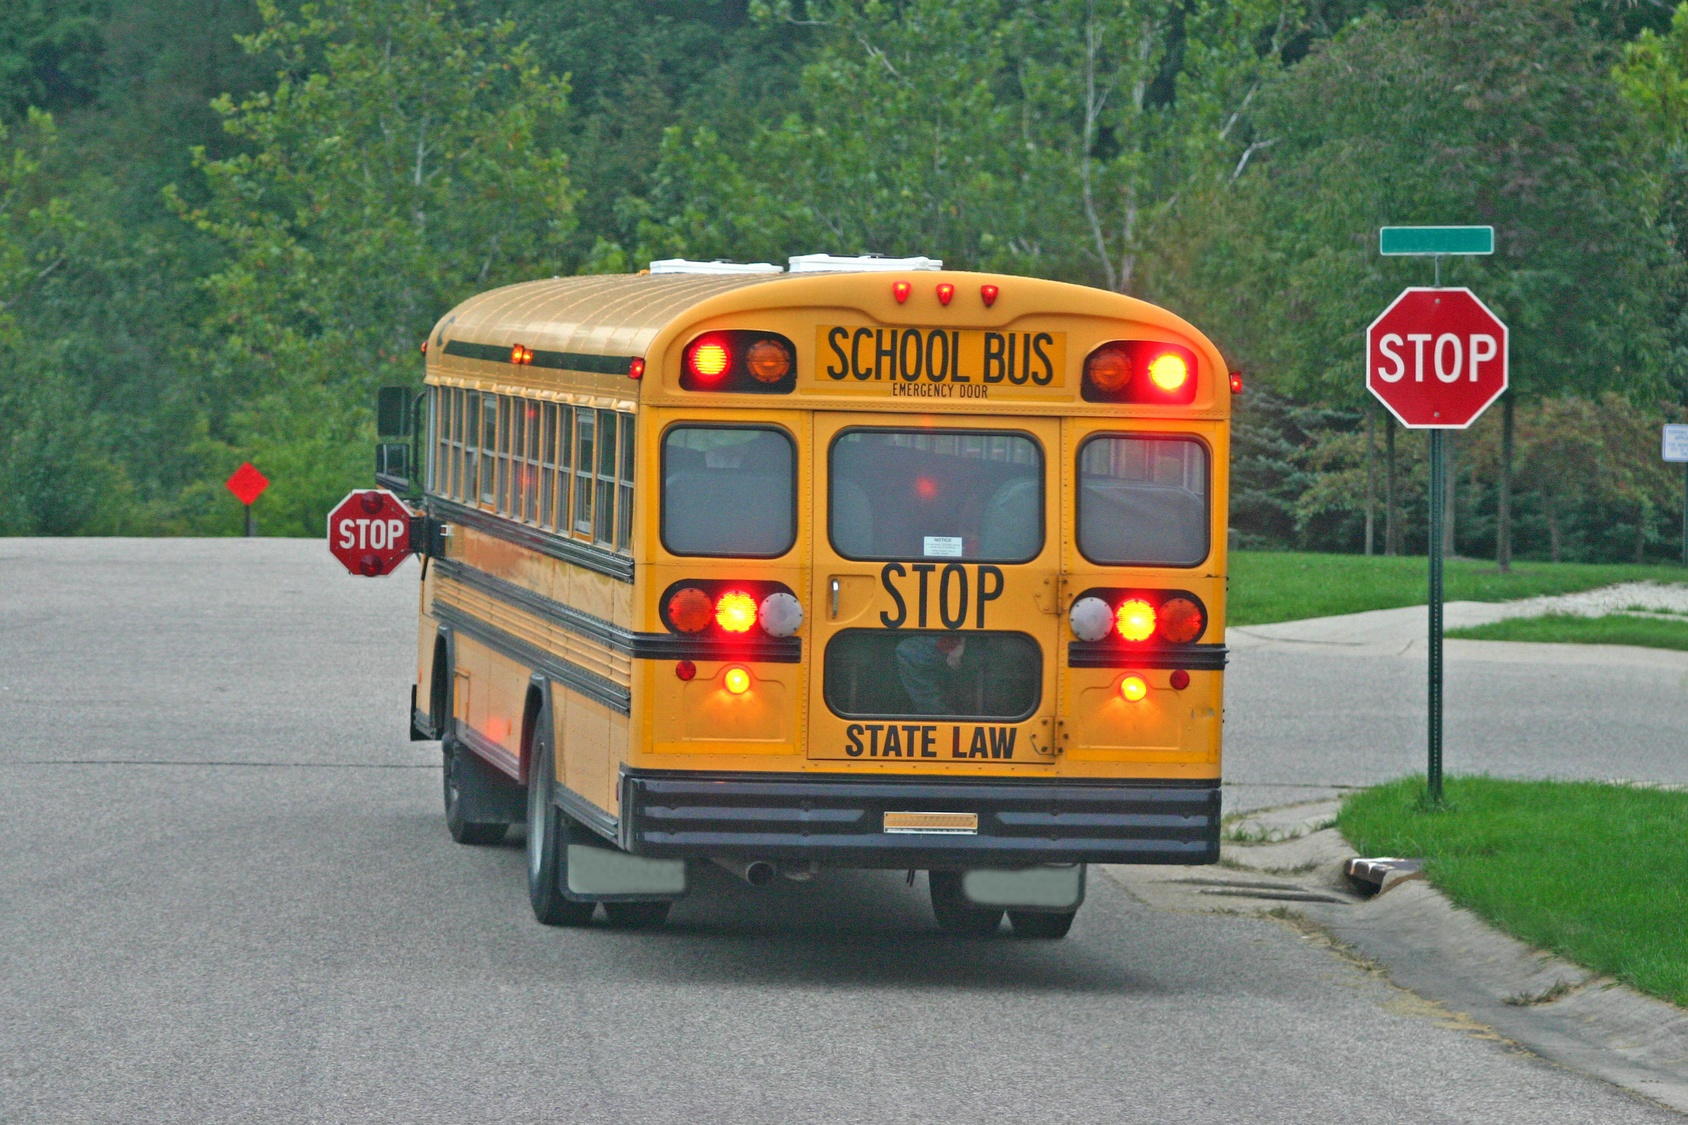 How drivers handle turns and the speeds they travel at are considerable factors in keeping school buses safe.